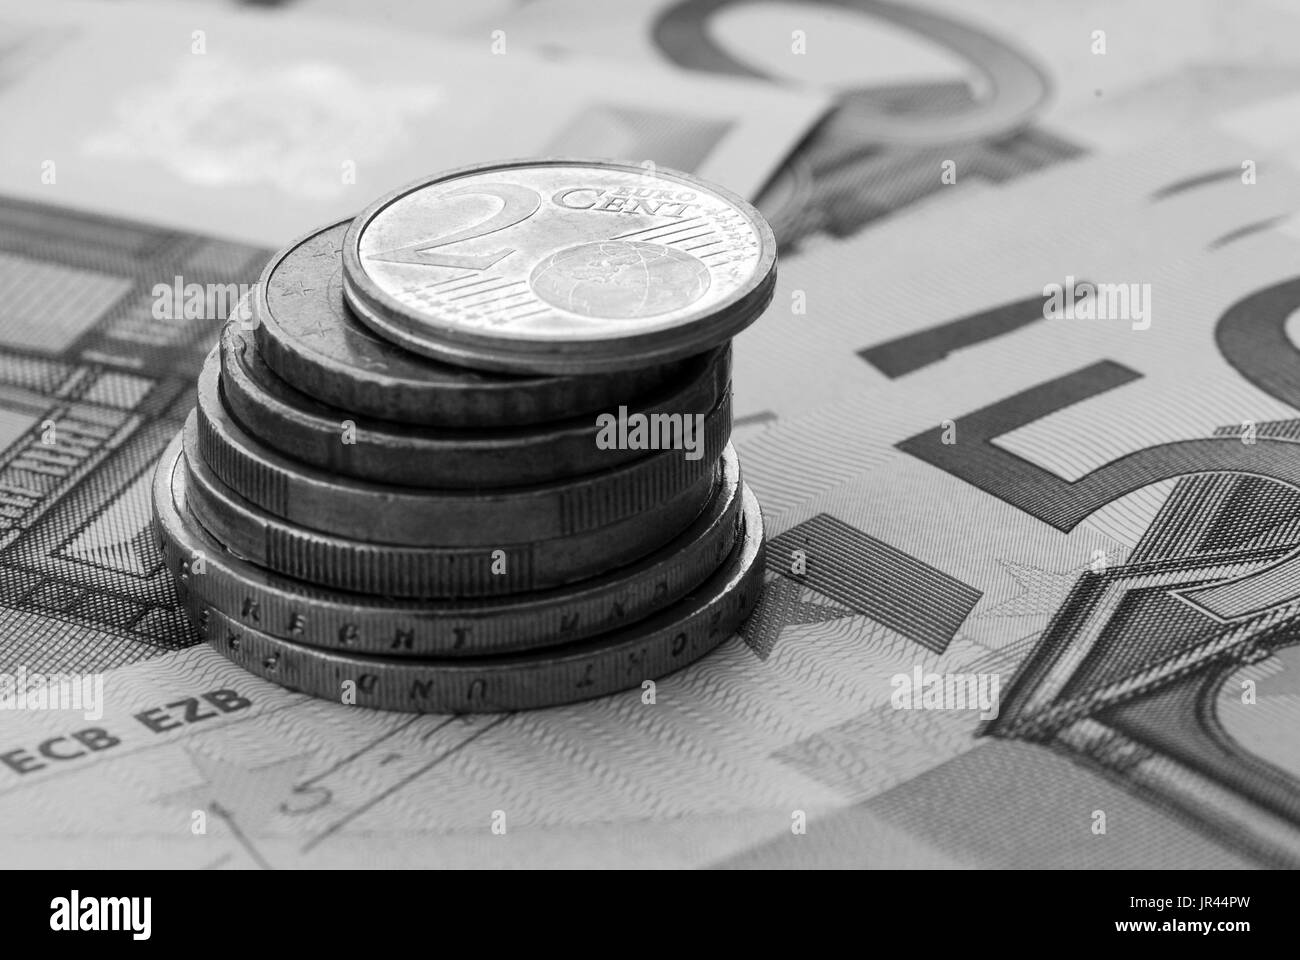 Coins Black And White Stock Photos Amp Images Alamy